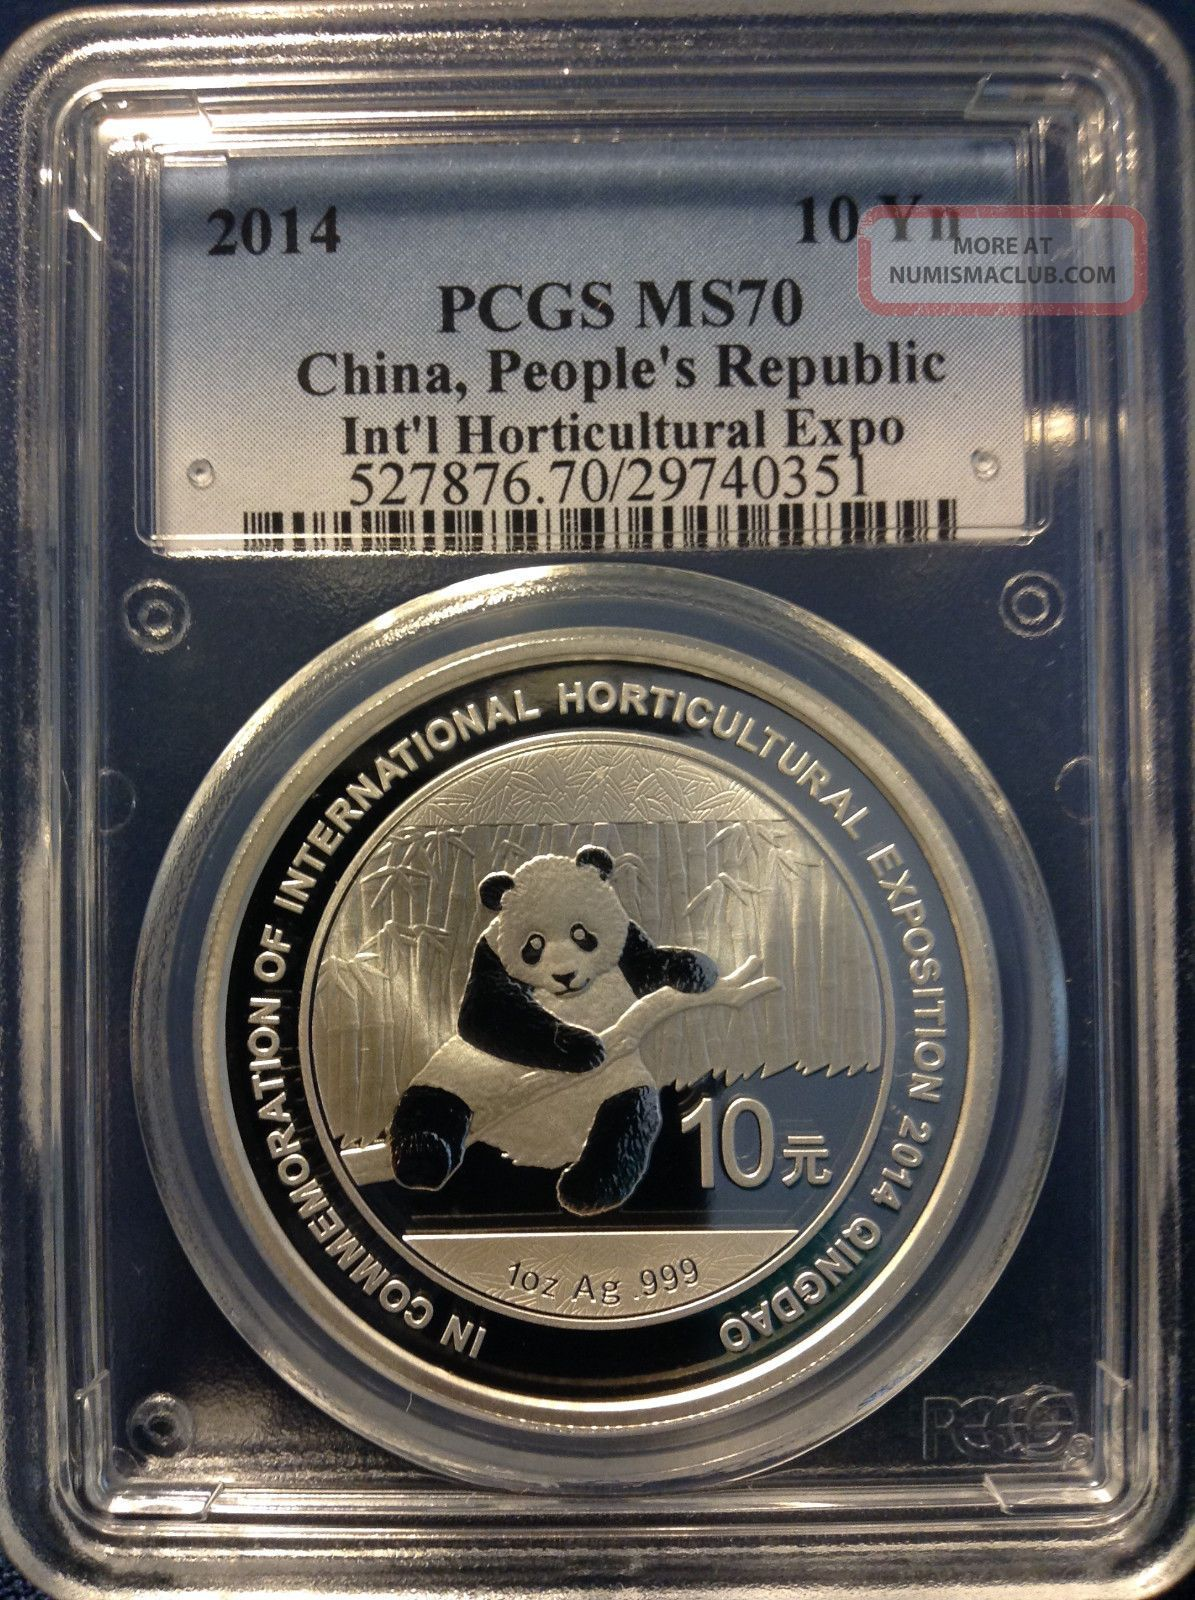 2014 Pcgs Ms70 10yn China Silver Panda Int ' L Horticultural Expo Rare - China photo